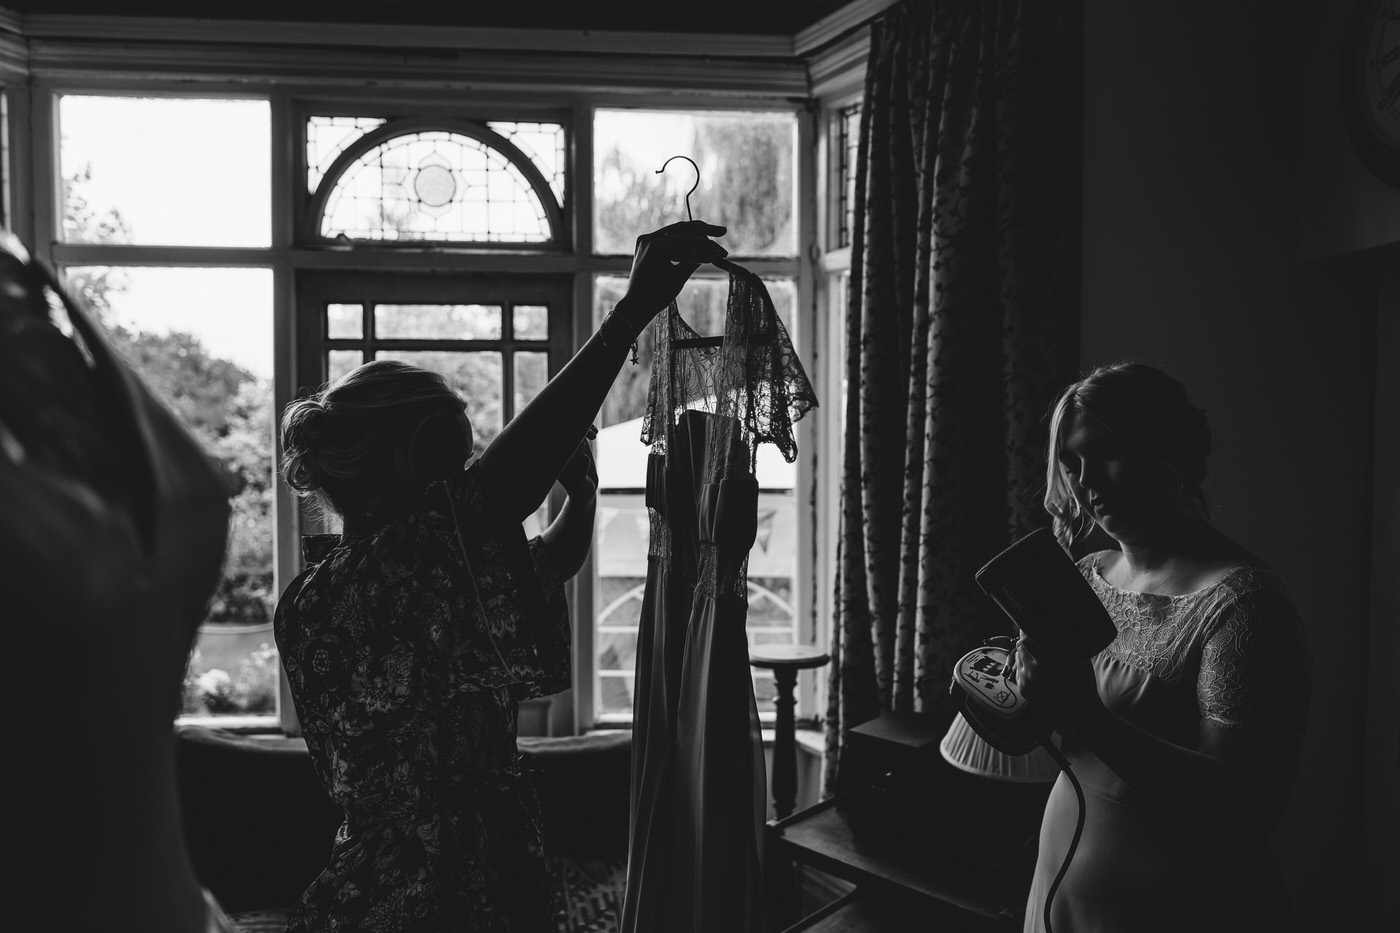 shropshire wedding photographer captures candid moments at wedding